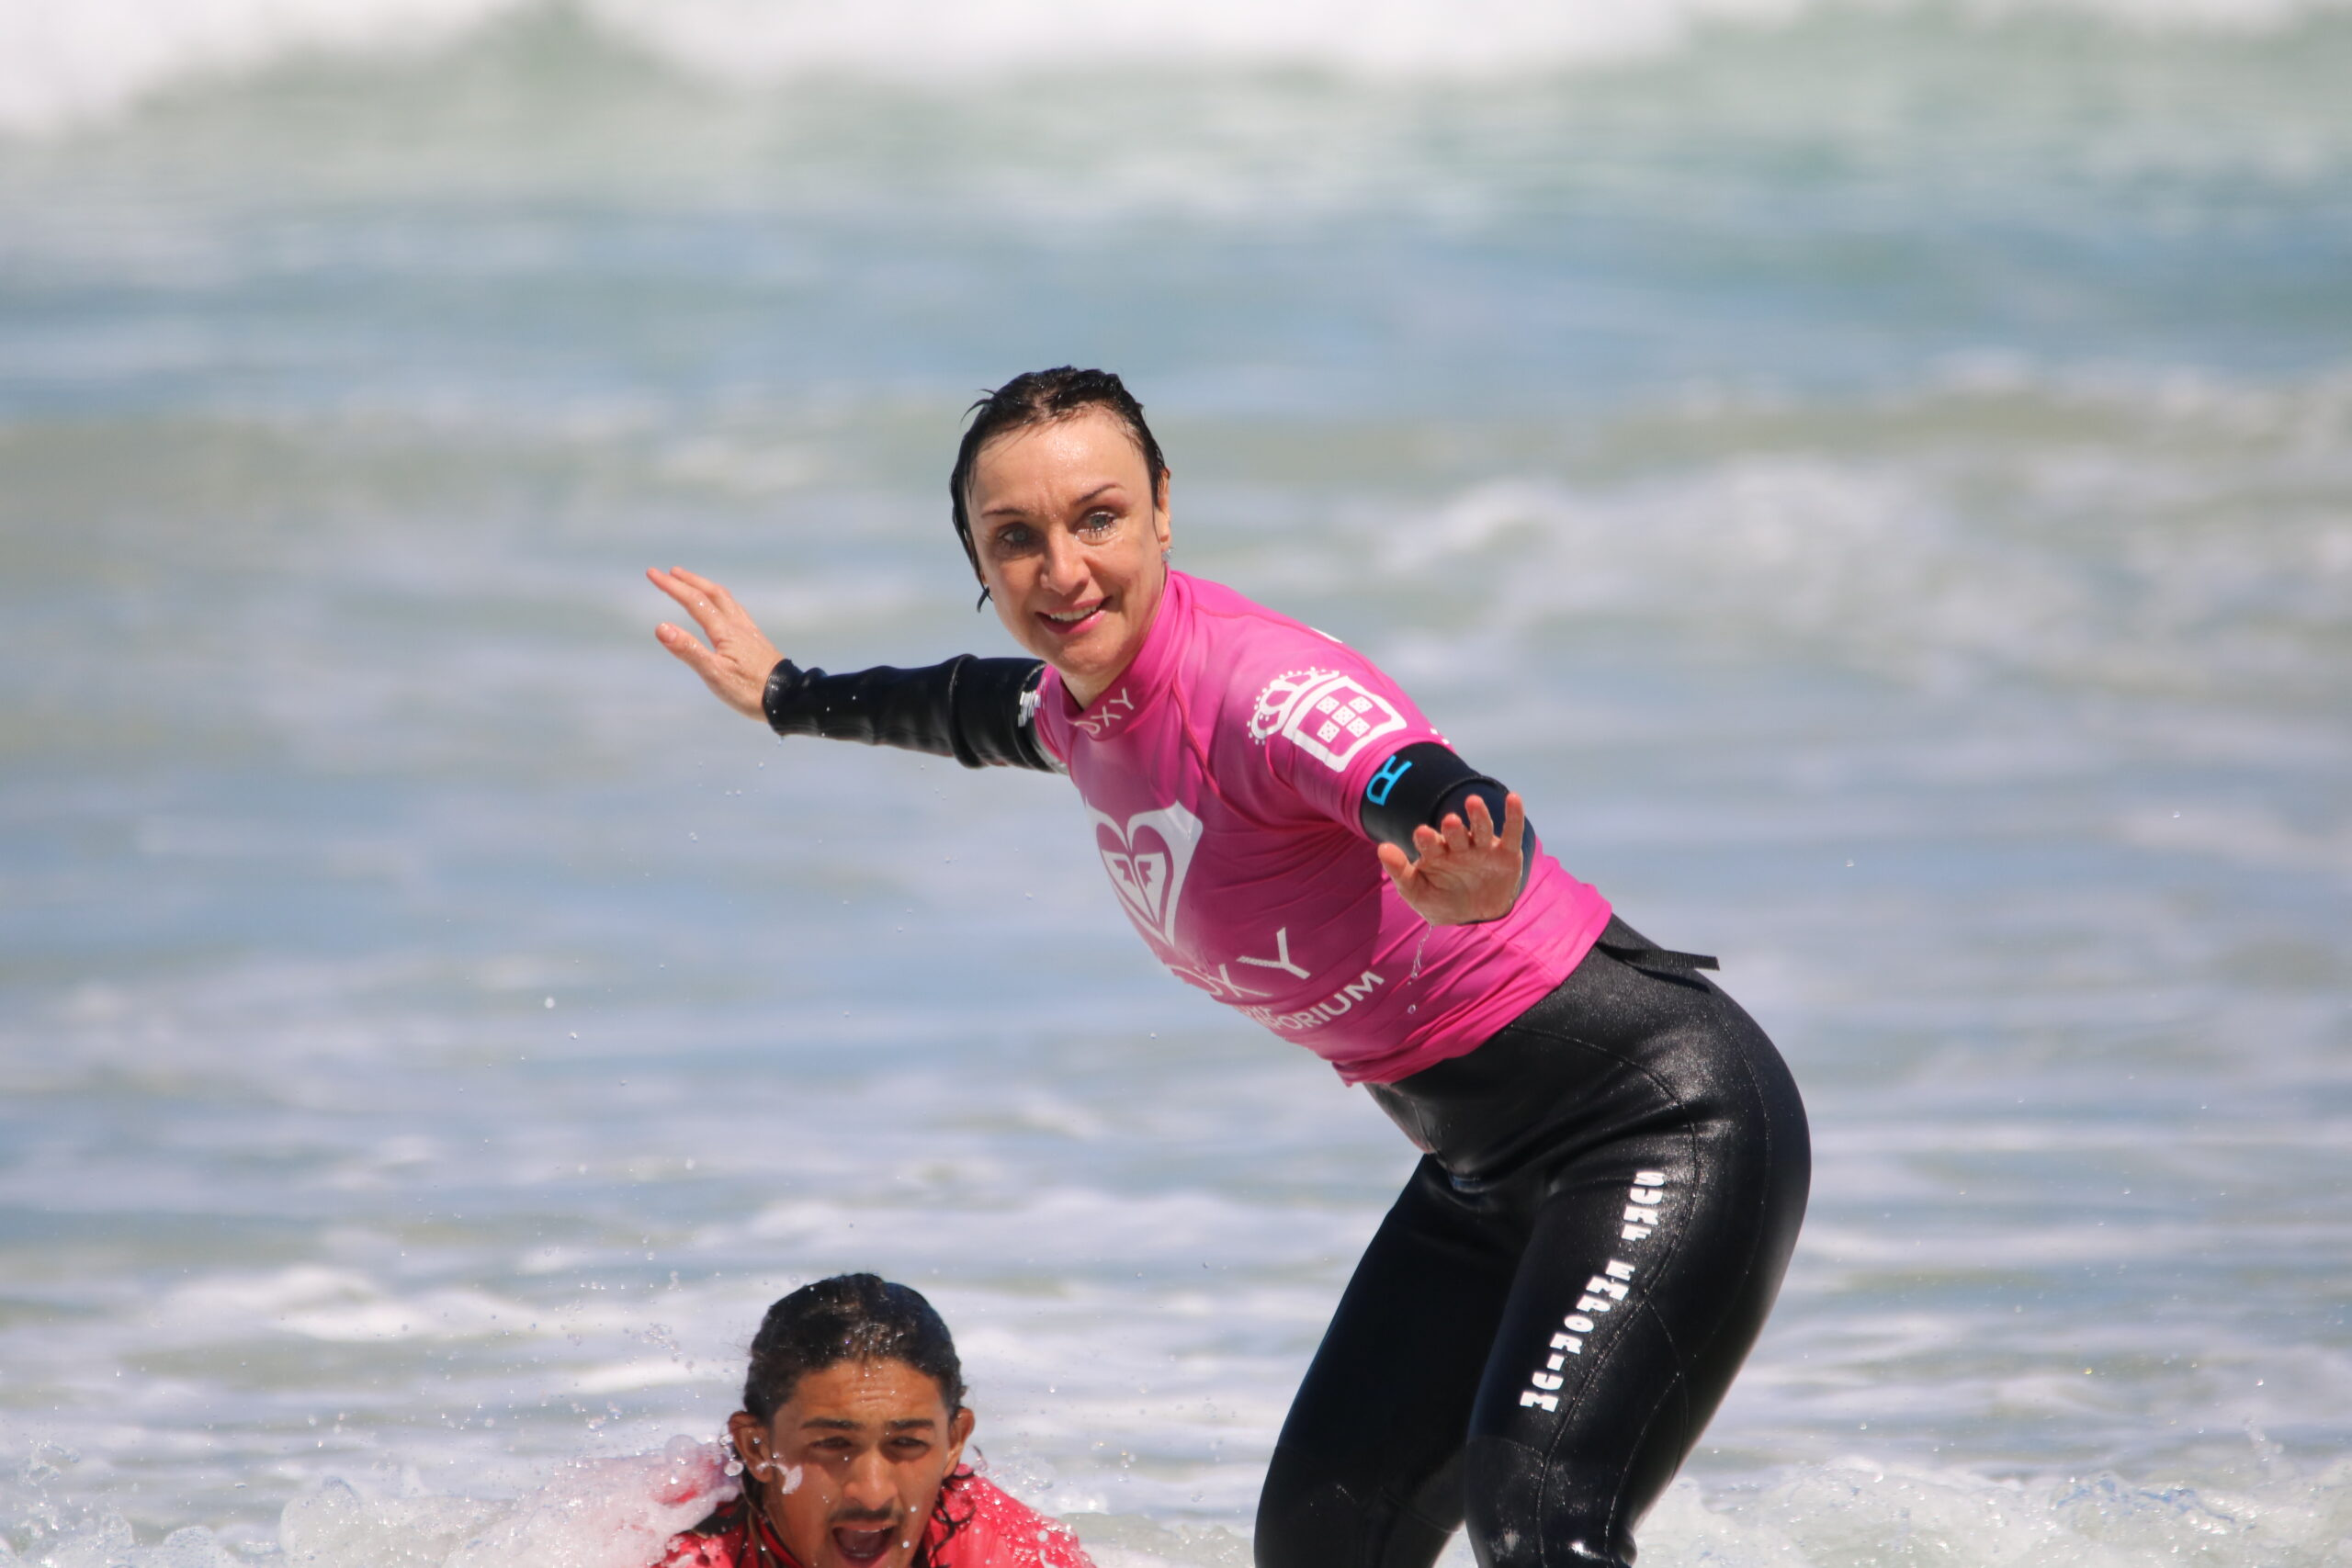 Visually Impaired surfer